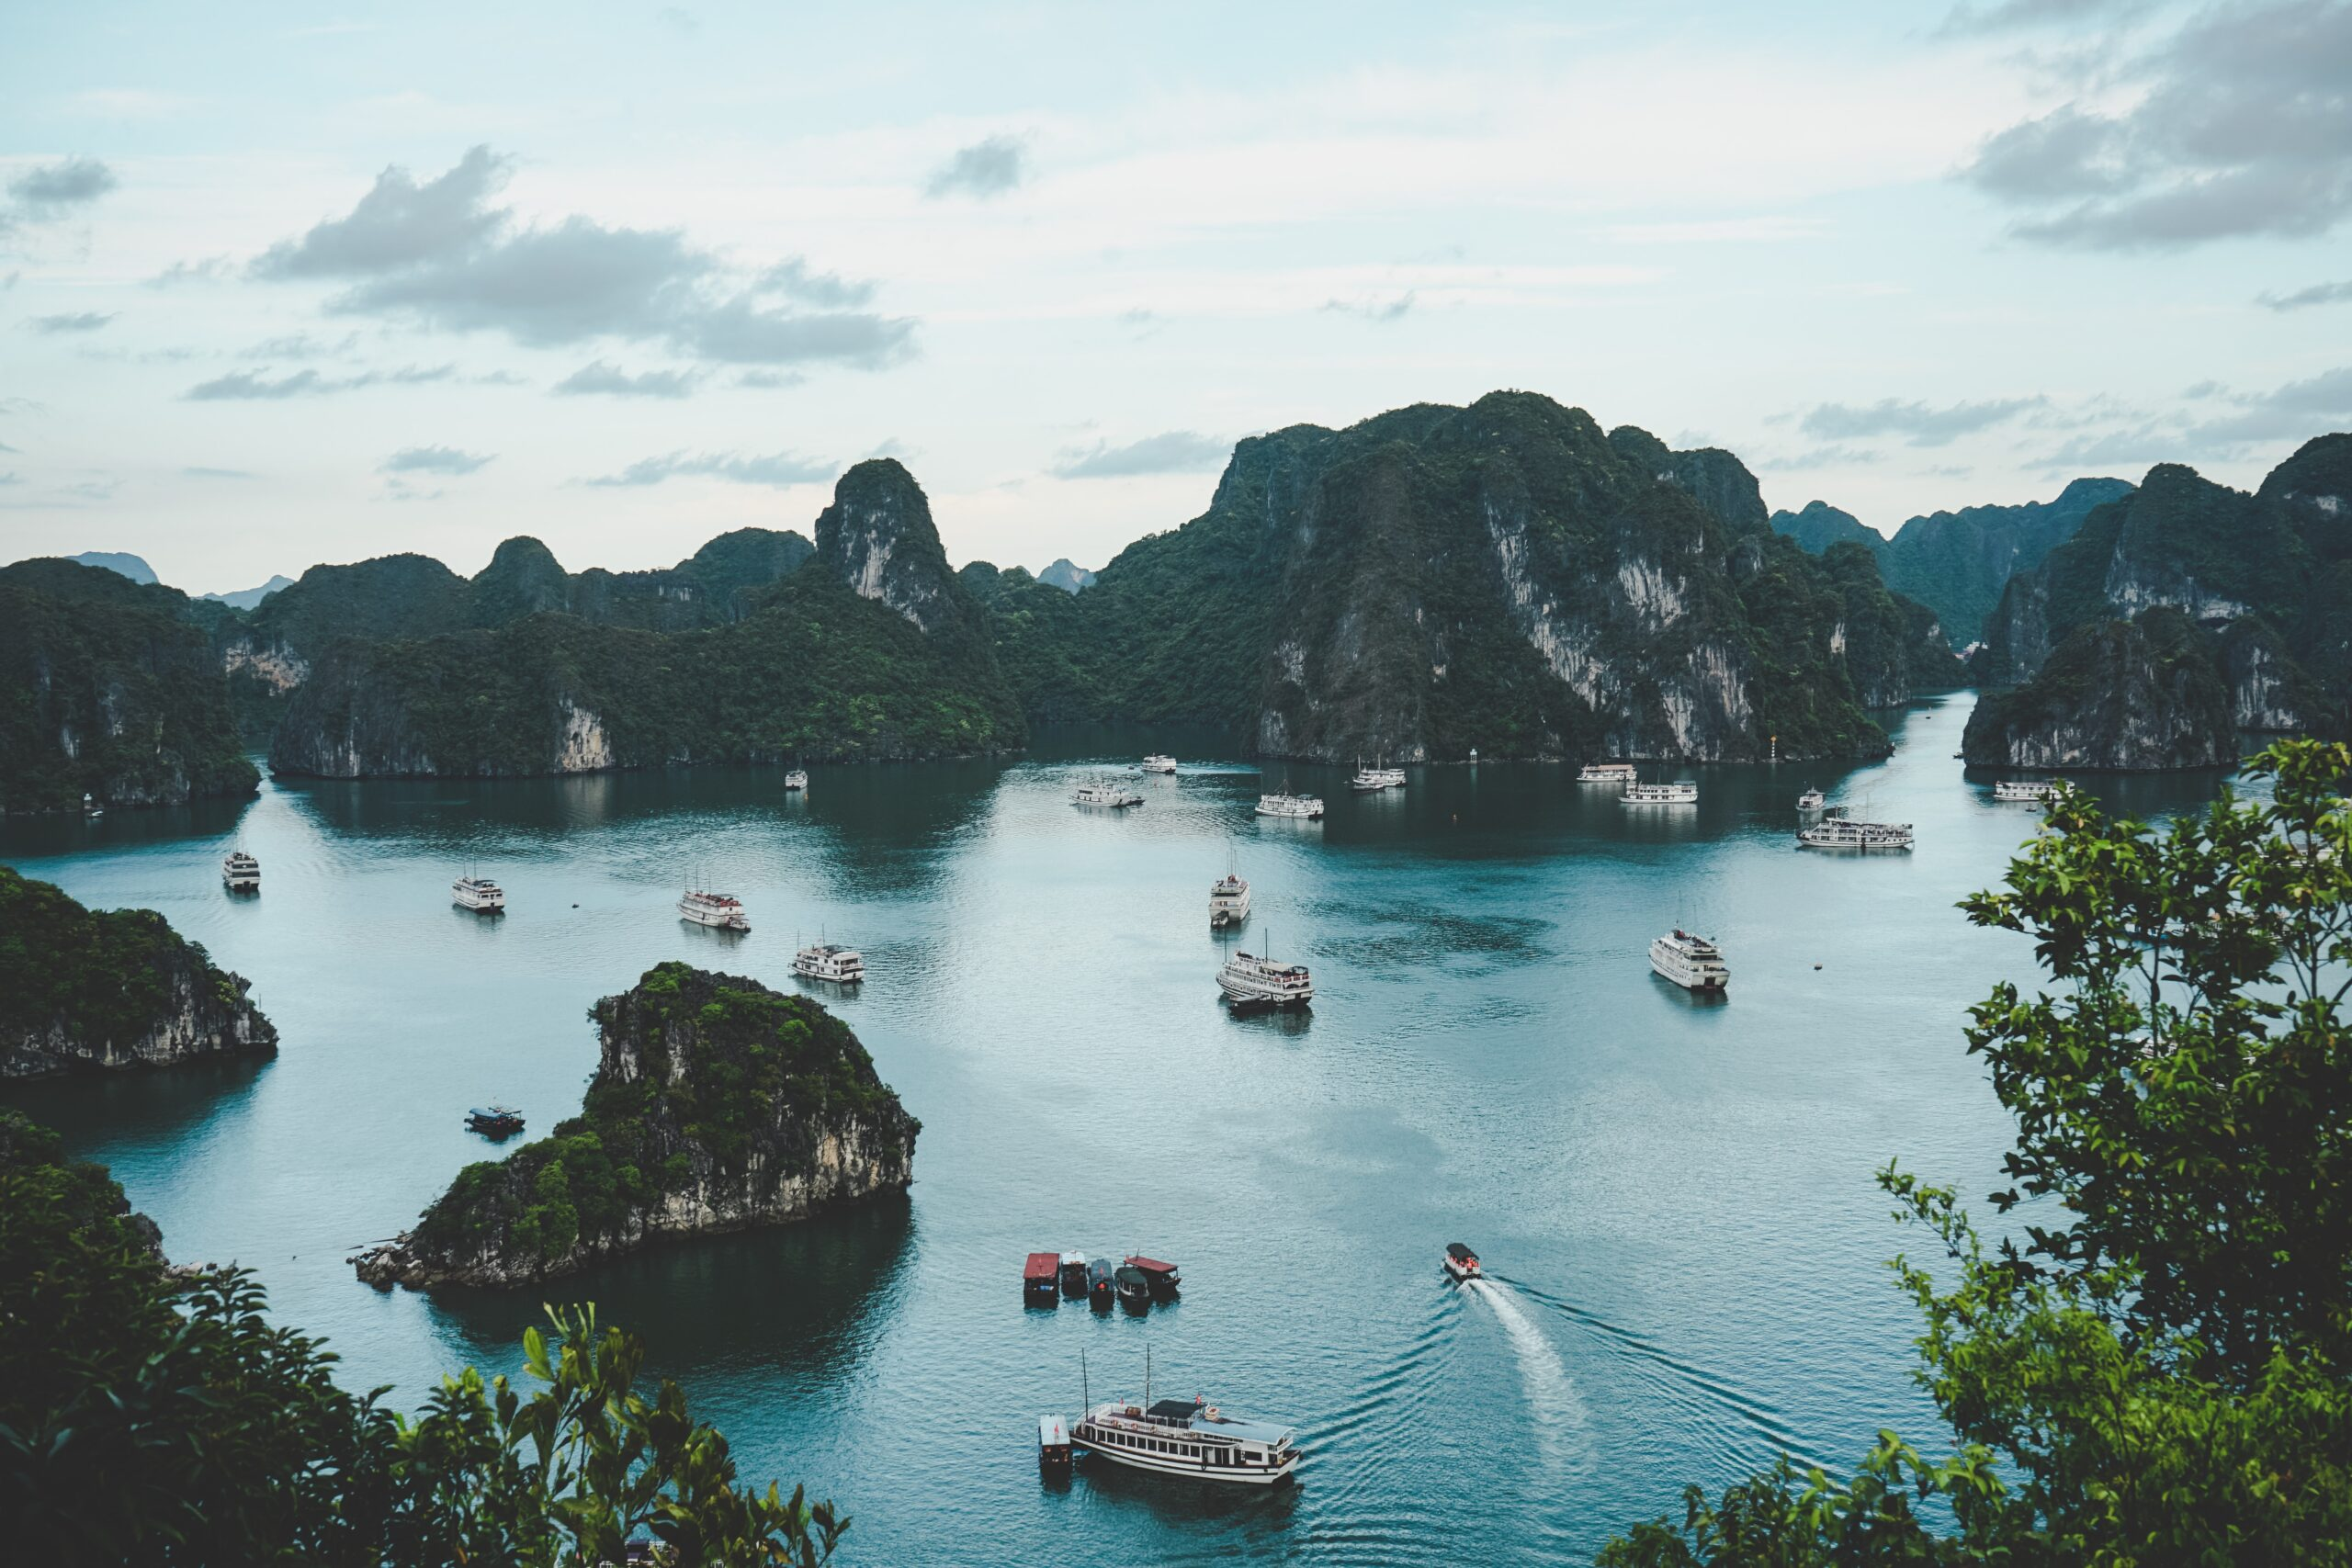 Vietnamese Single Family Office Launches Joint Venture with Indonesian Fintech